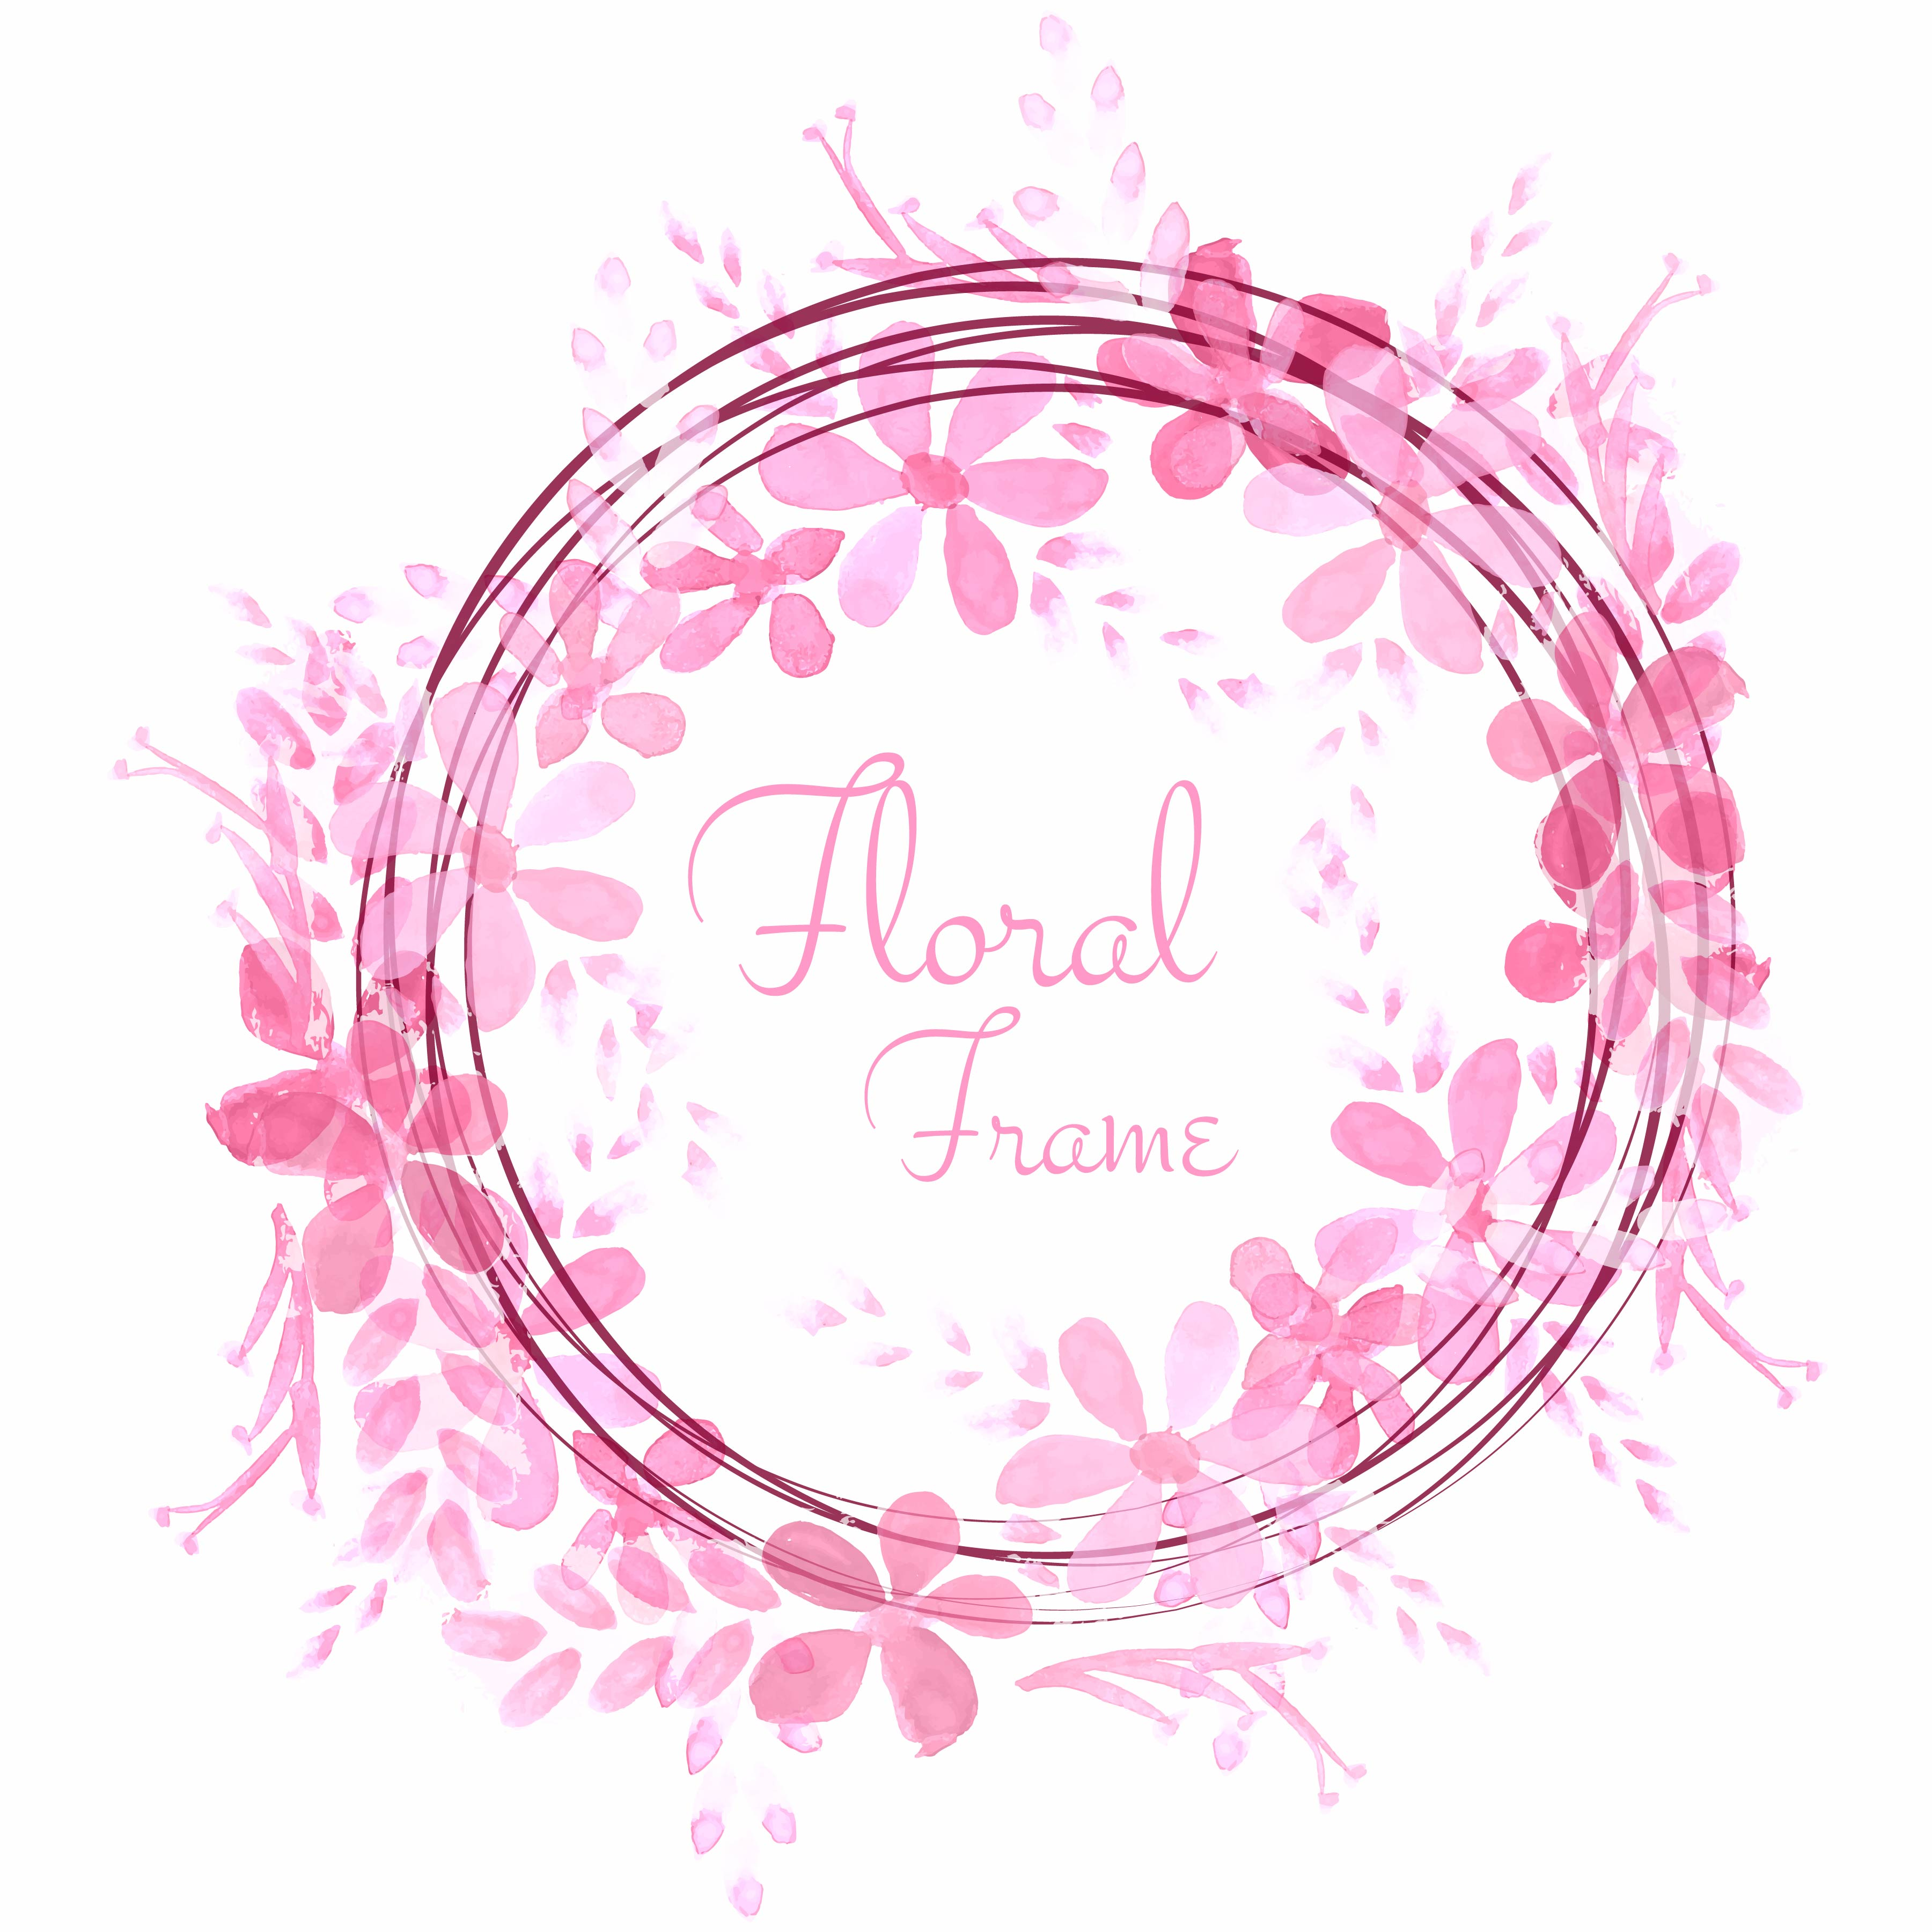 Abstract Flower Background With Decoration Elements For: Abstract Wedding Floral Frame Background